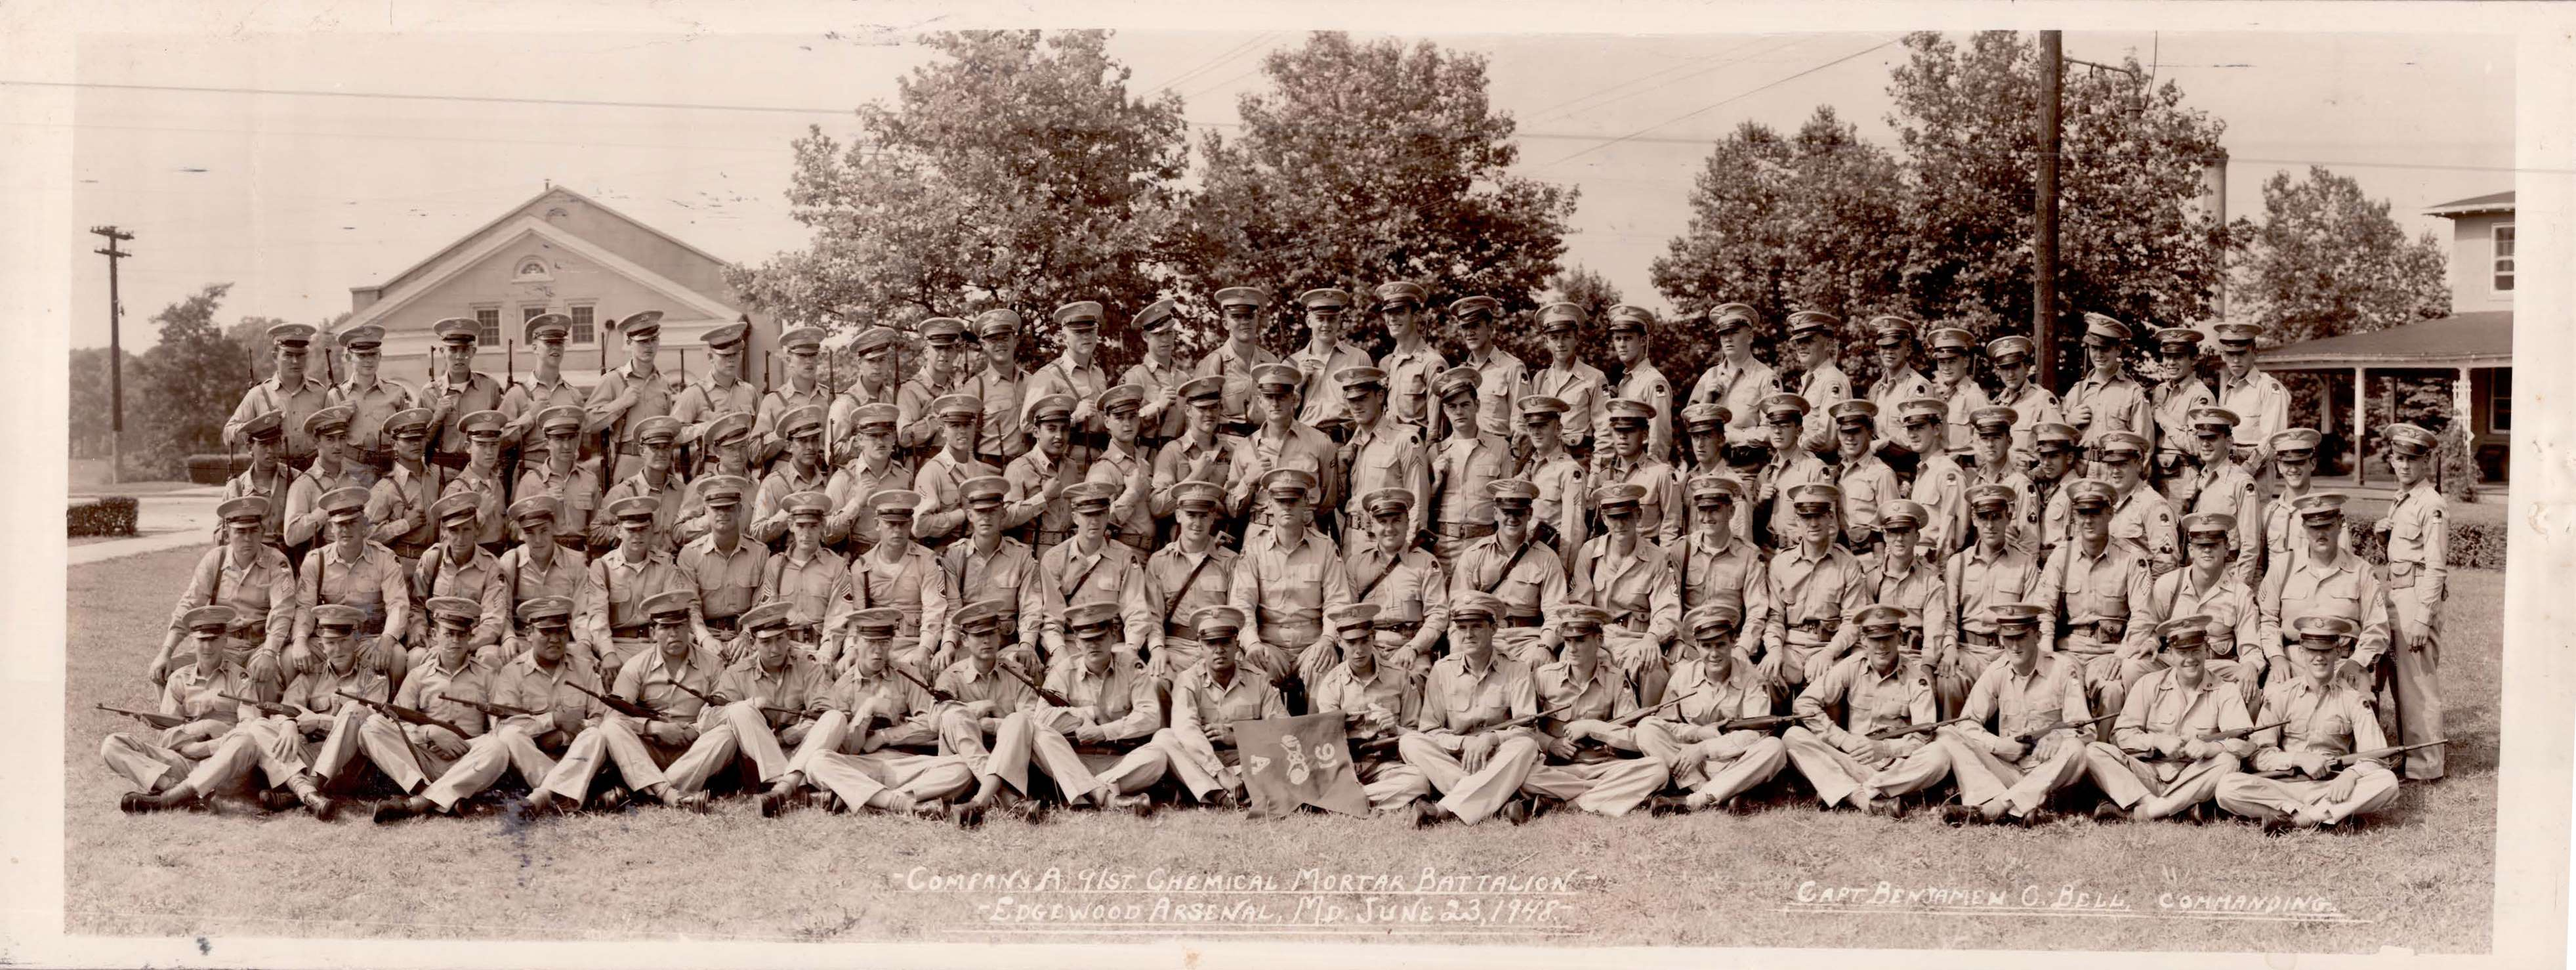 91st Chemical Mortar Battalion Co A At Edgewood Arsenal MD June 23 1948 Provided By Ellen Bell Daughter Of Col Benjamin C